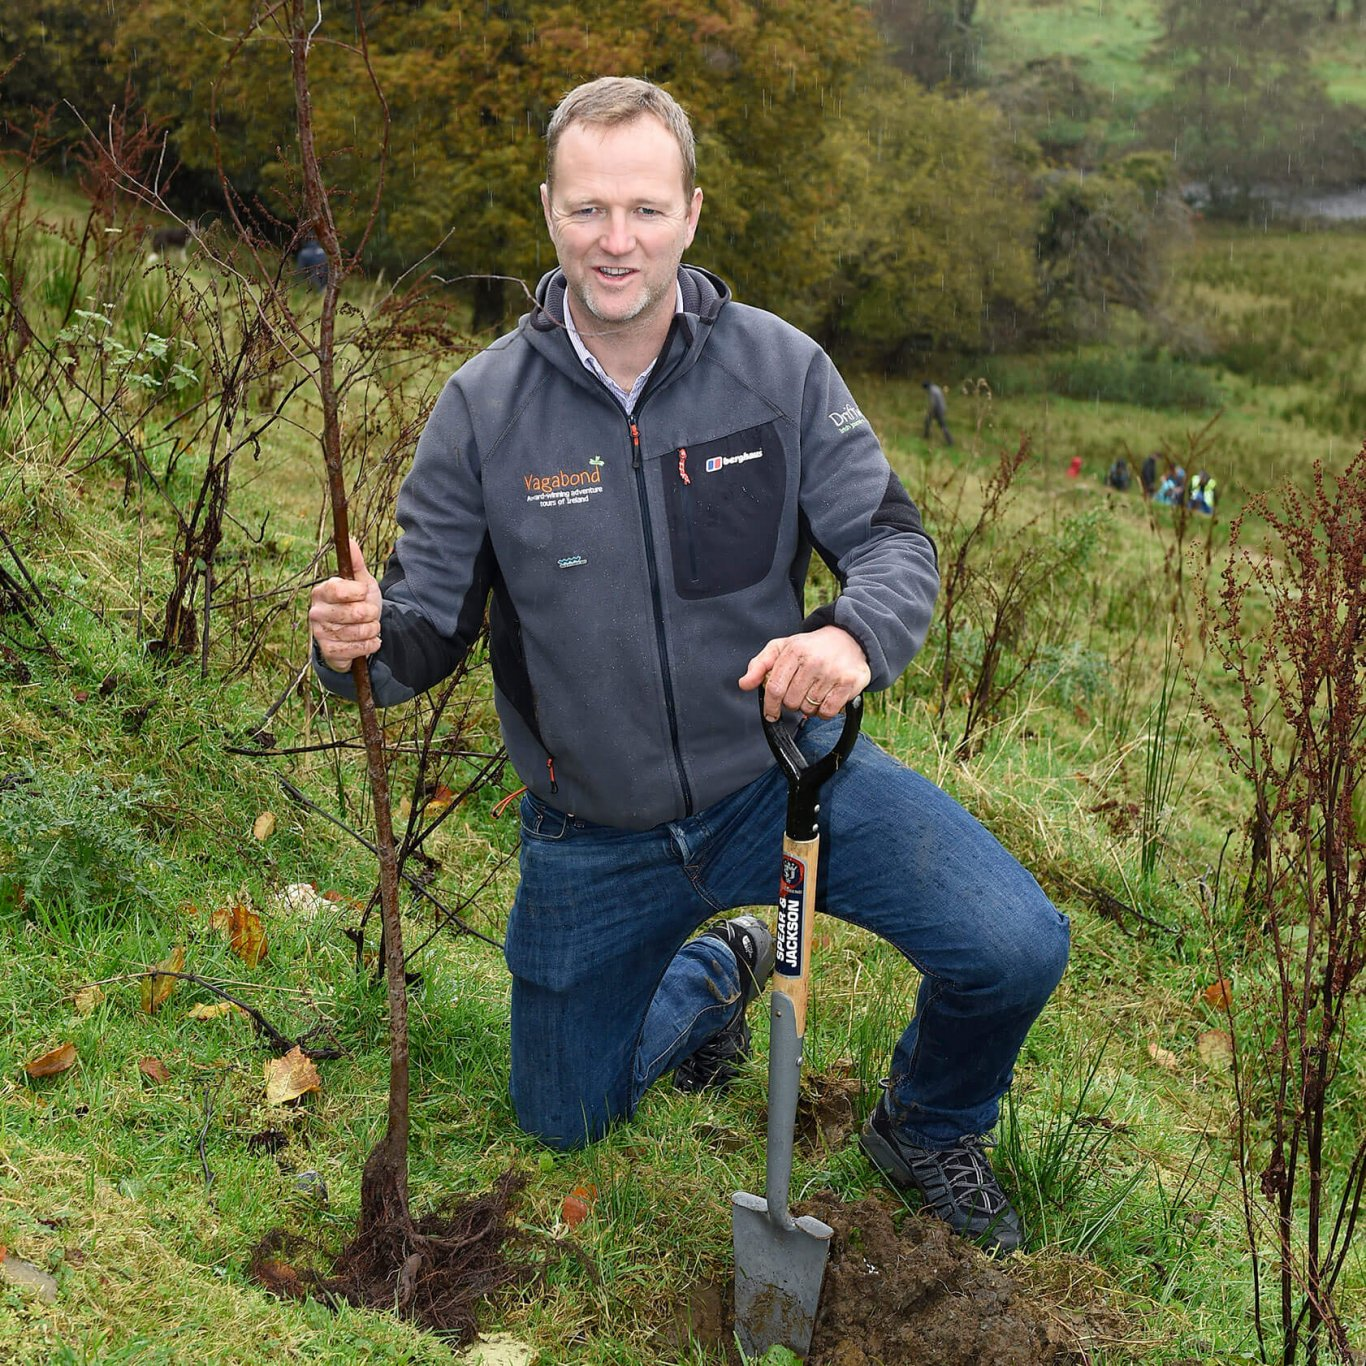 Rob Rankin of Vagabond small group tours of Ireland planting a tree